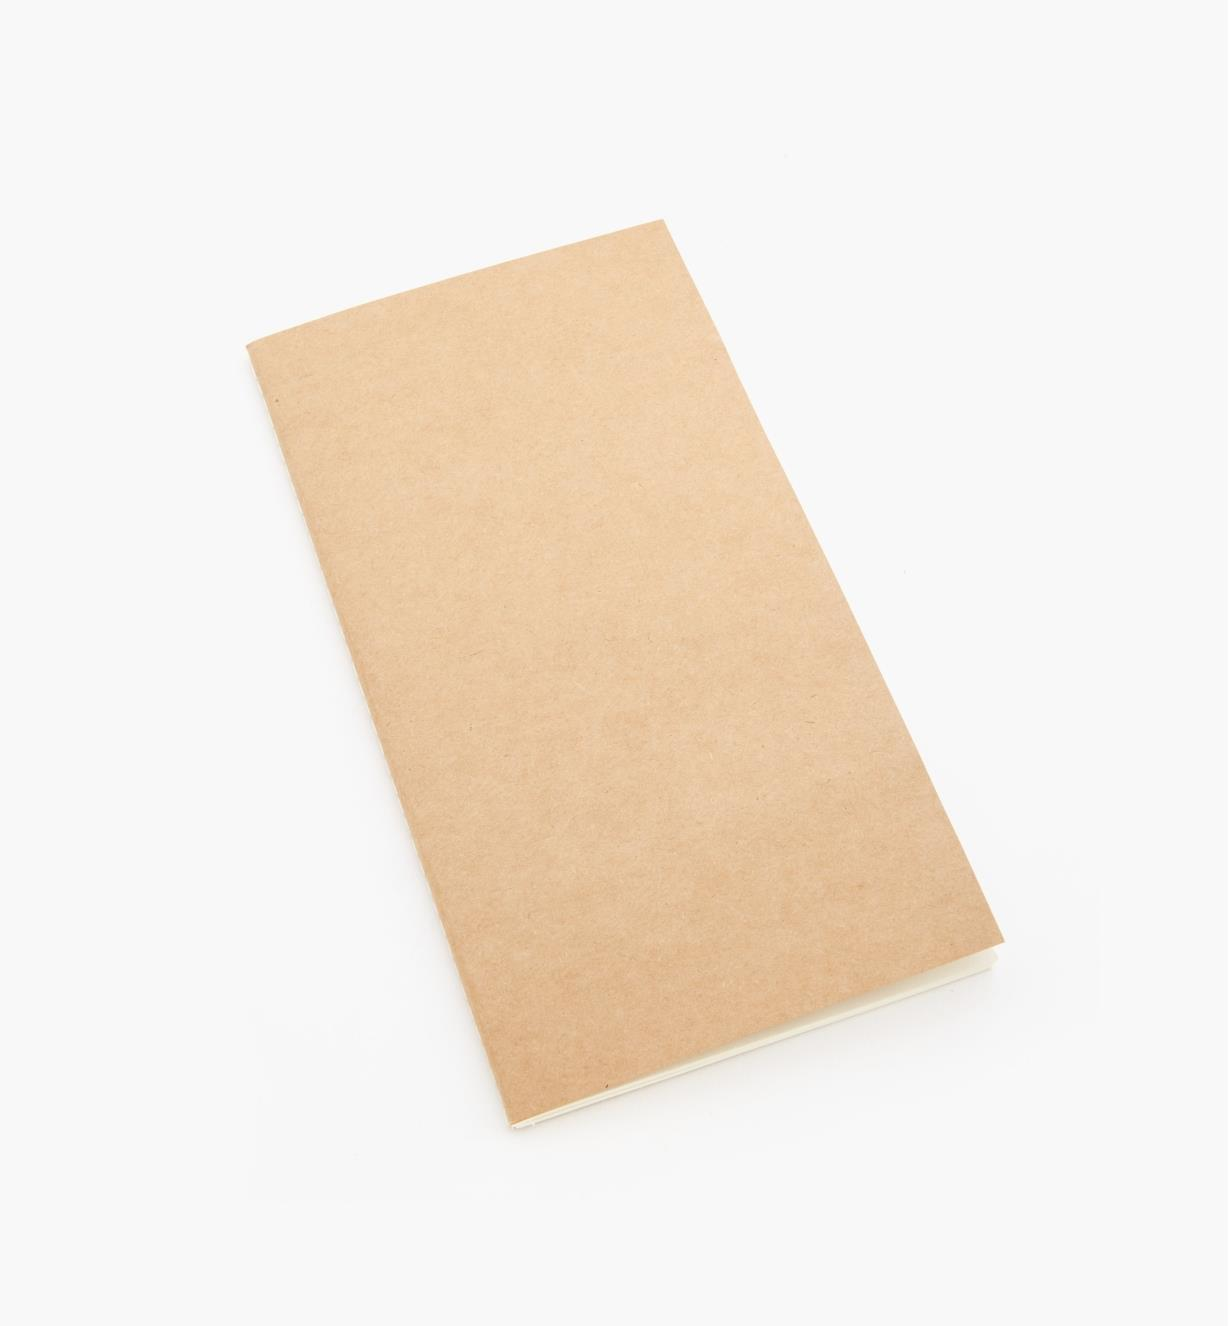 09A1061 - Replacement Notebook for Premium Leathercraft Notebook Cover Kit